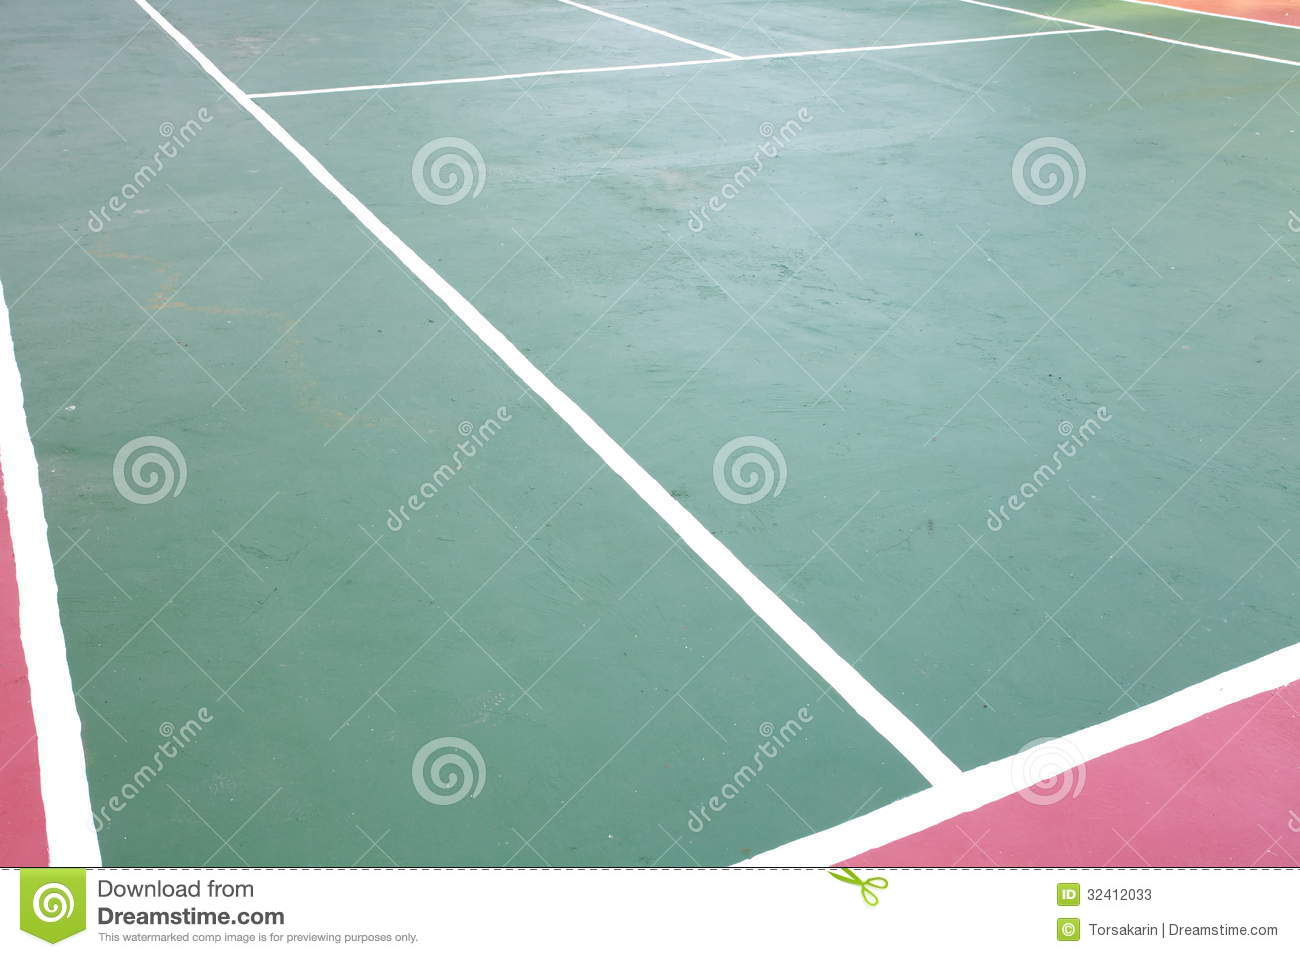 Intersecting Lines In Sports Tennis court white intersecting linesIntersecting Lines In Sports